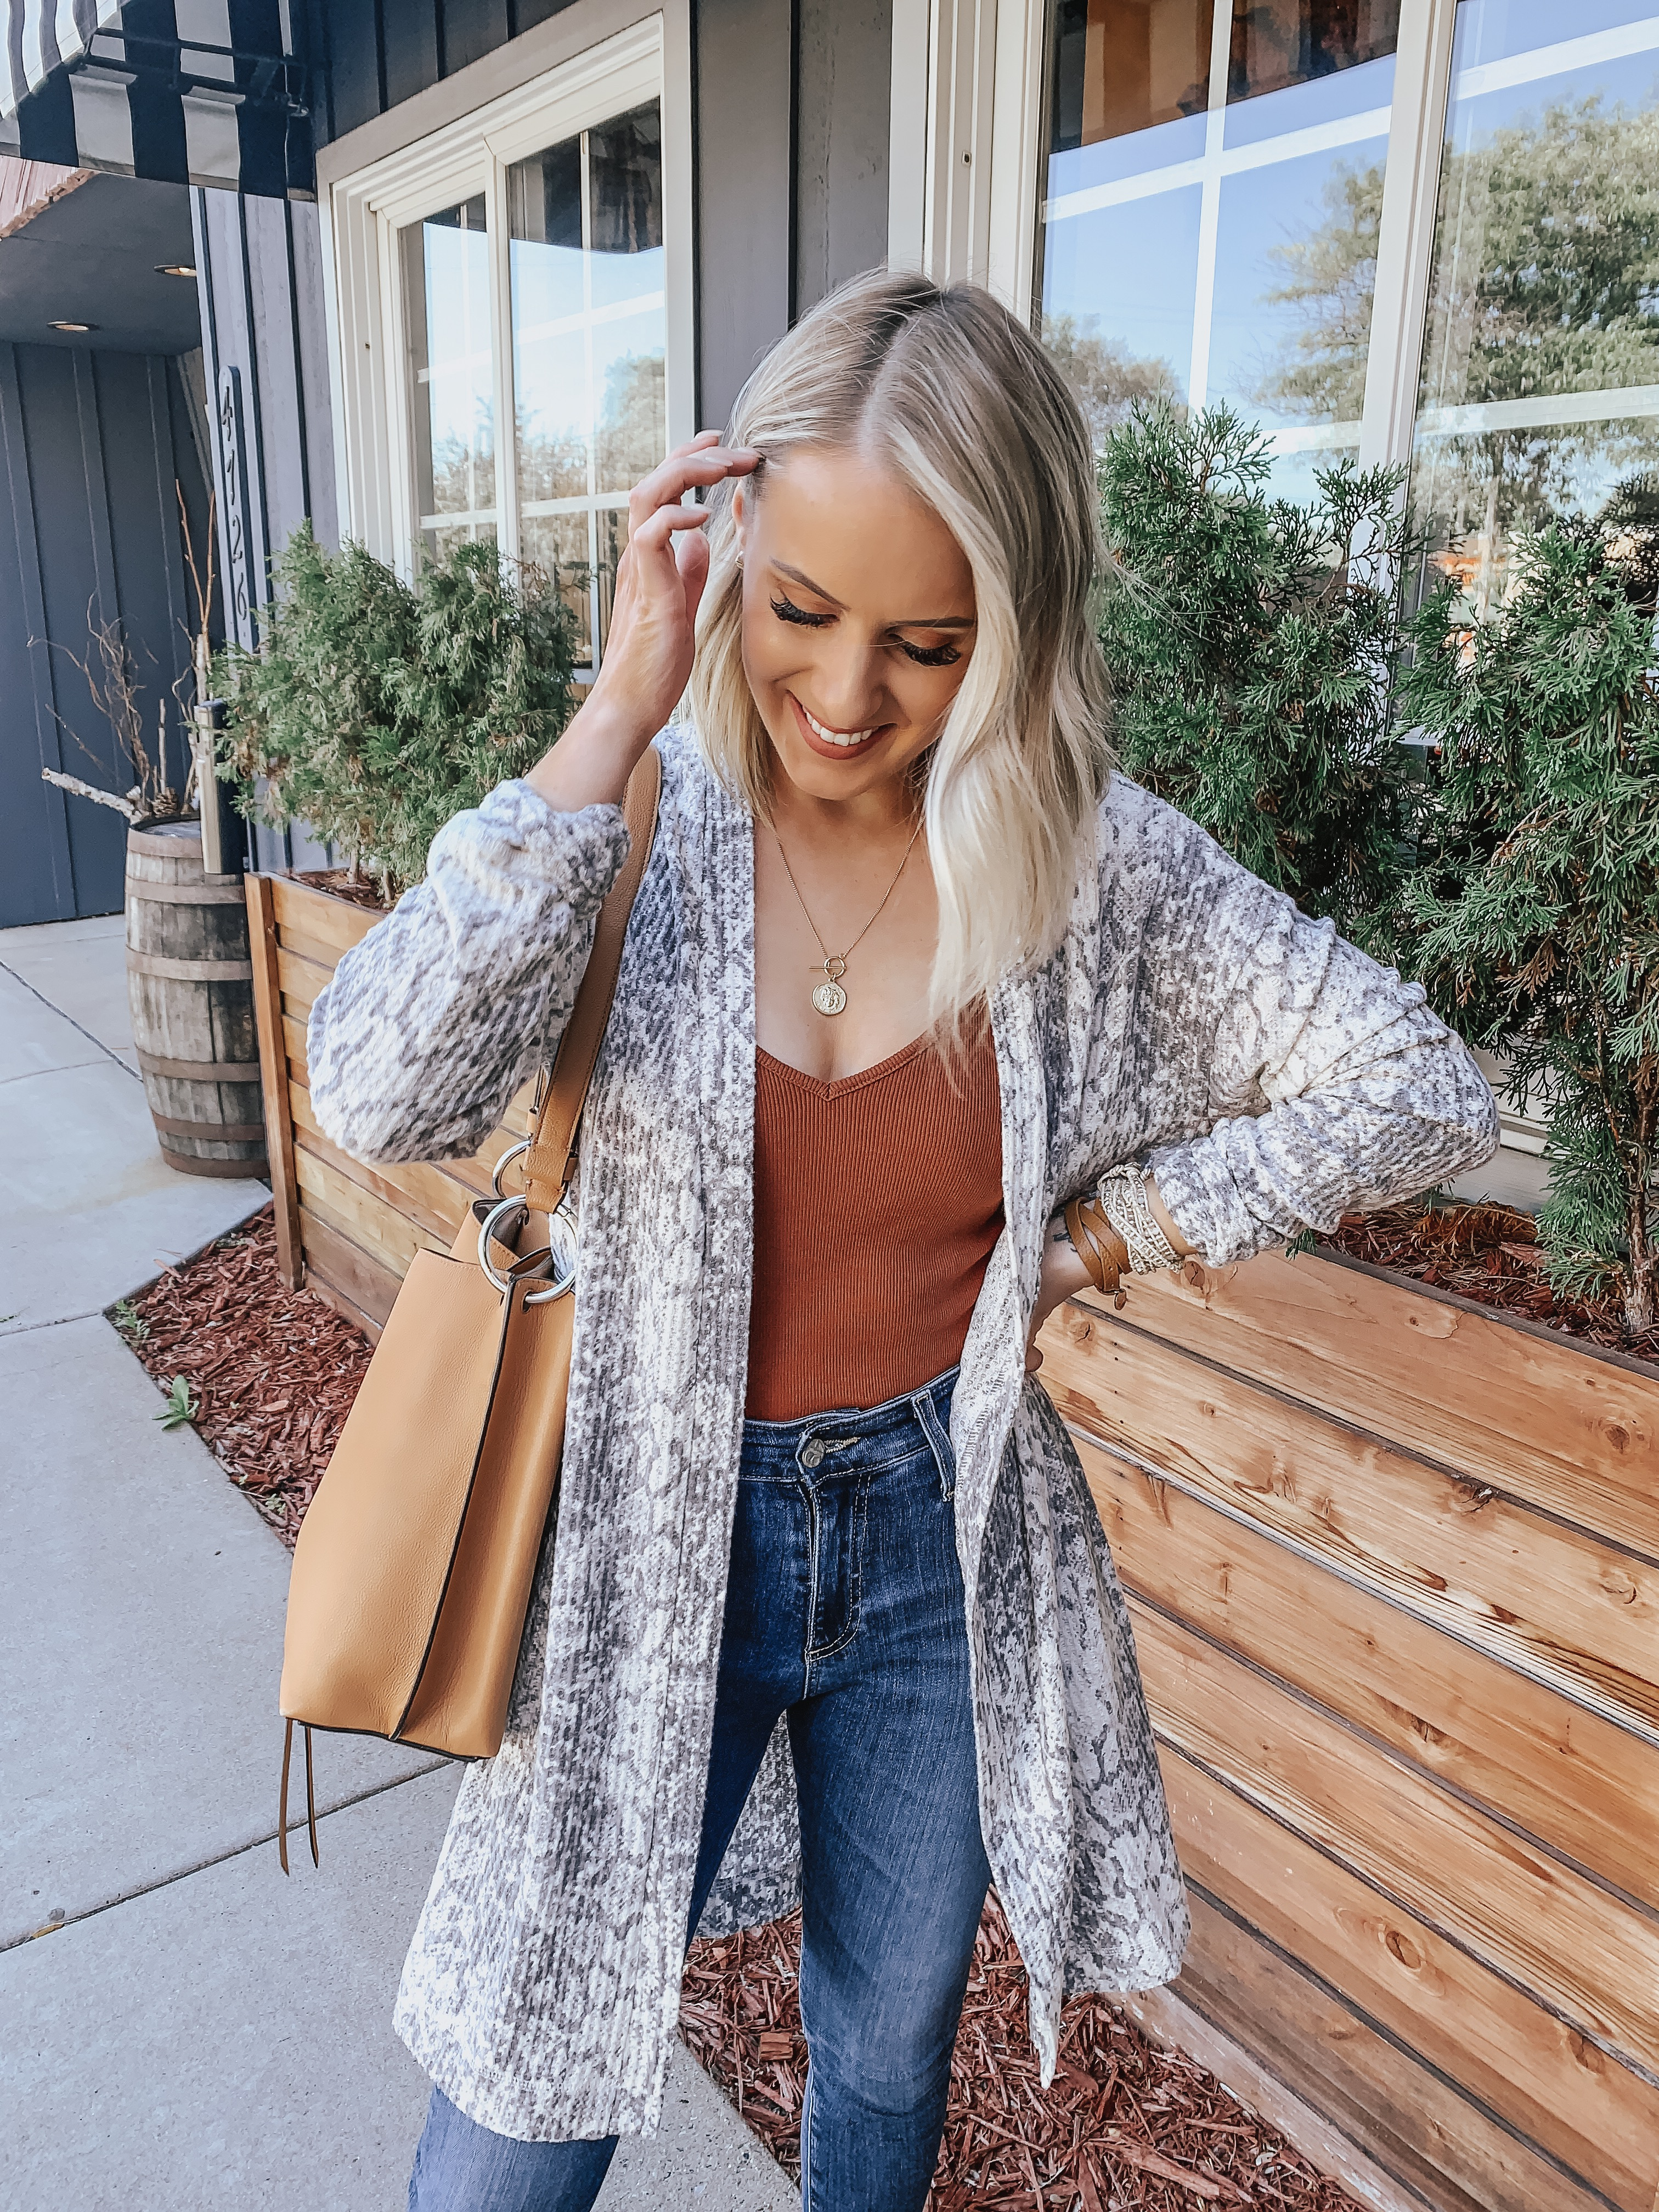 How to Style the Snakeskin Trend for Everyday Wear | Style Blogger Lauren Meyer shares How to Style the Snakeskin Trend for Everyday Wear